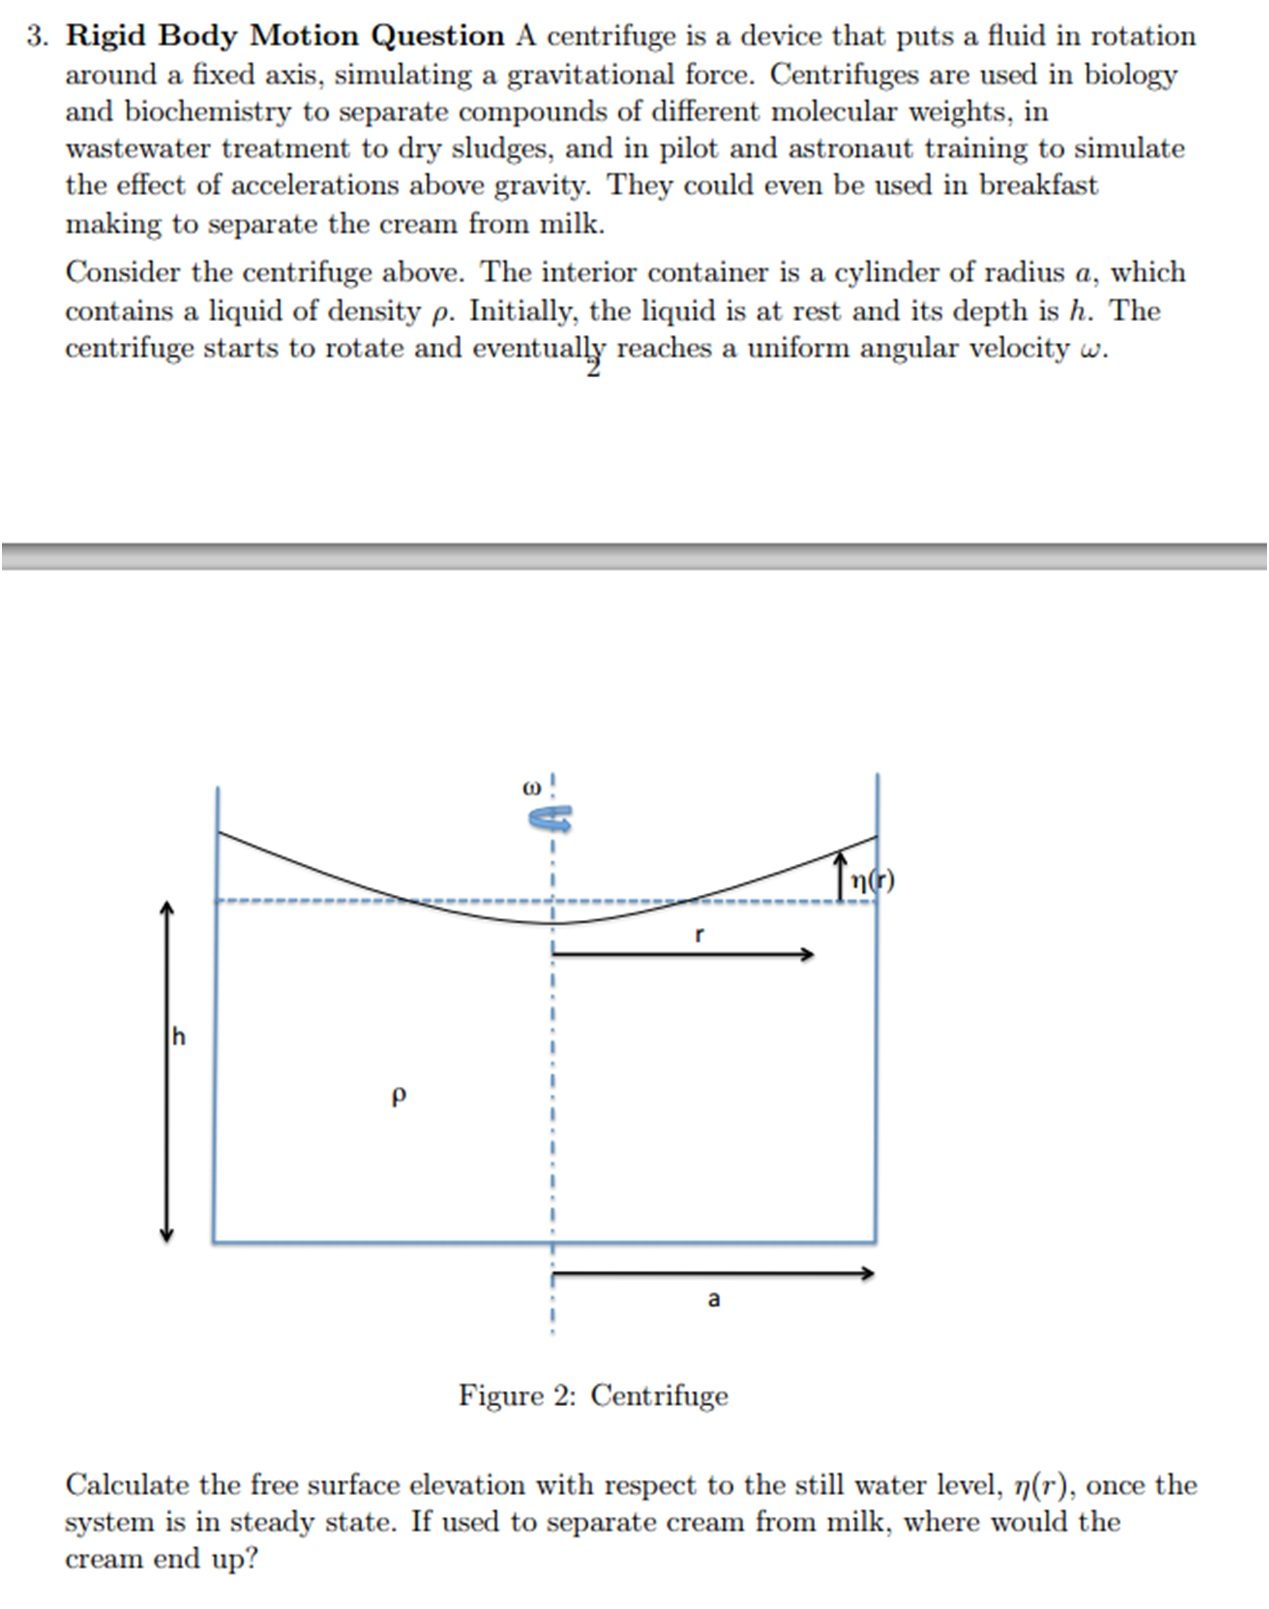 Rigid Body Motion Question A centrifuge is a devic